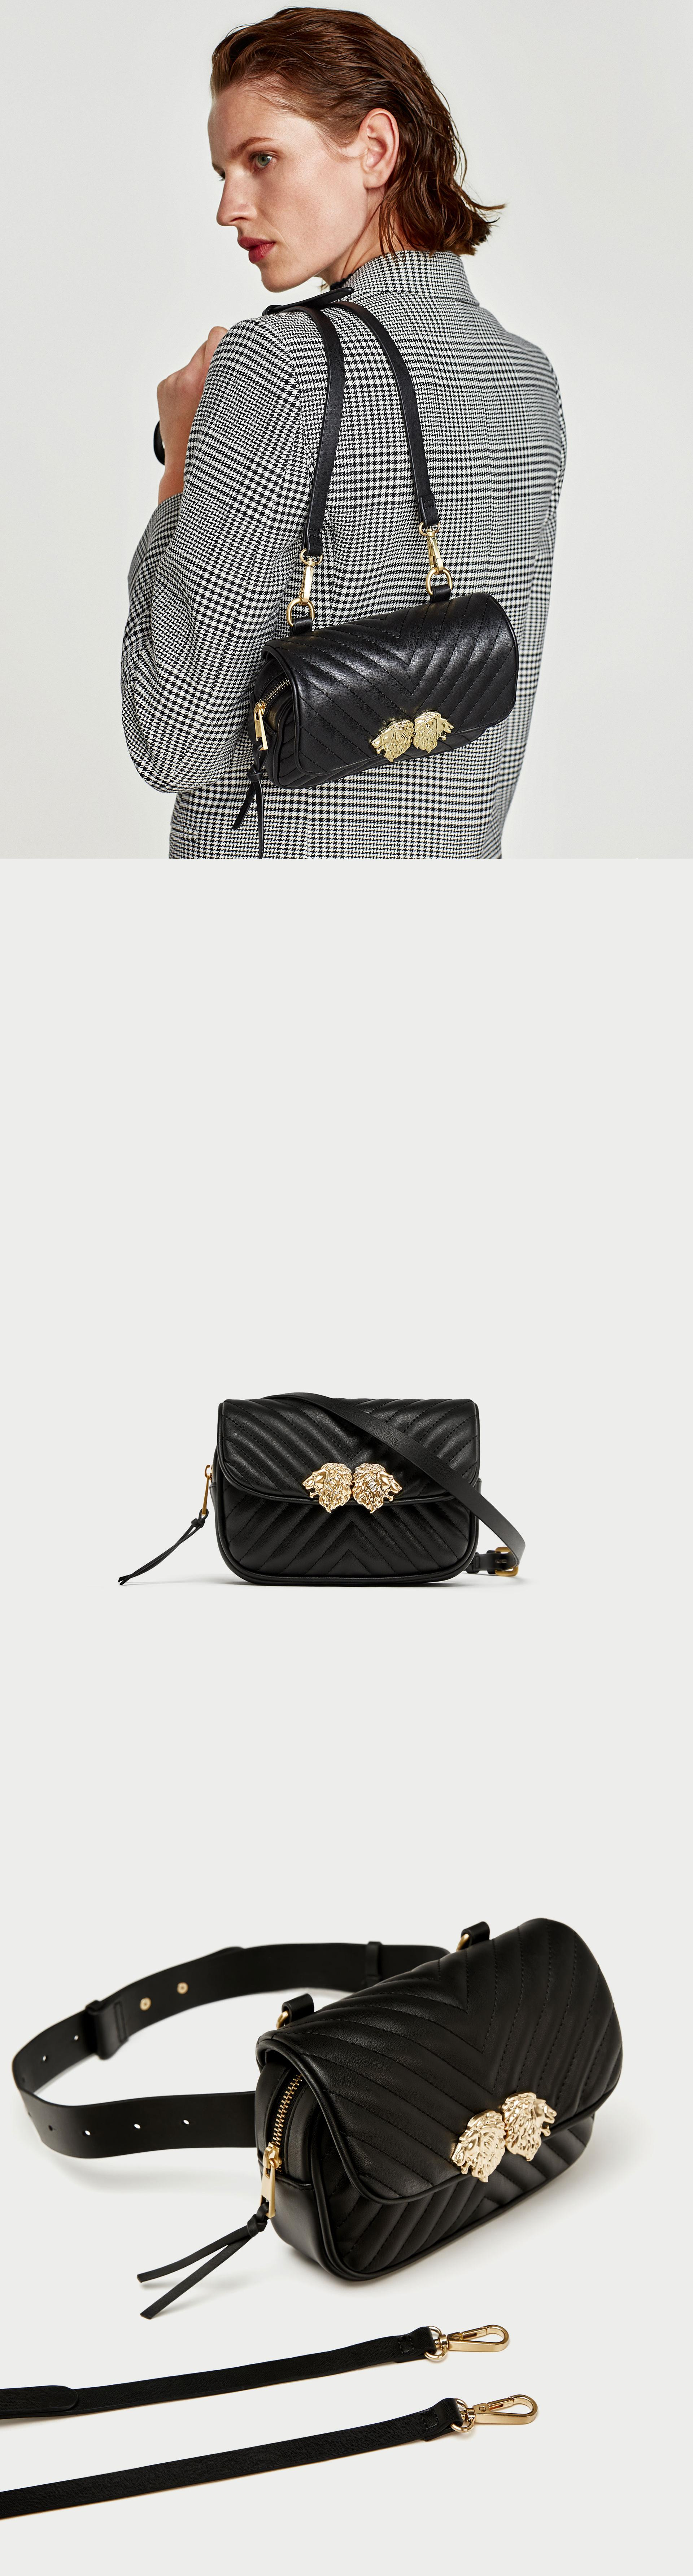 c8716ee207a Crossbody Belt Bag With Lions Detail // 39.90 USD // Zara // Black  multi-way crossbody bag that can be worn as a belt bag. Hardware detail on  the foldover ...